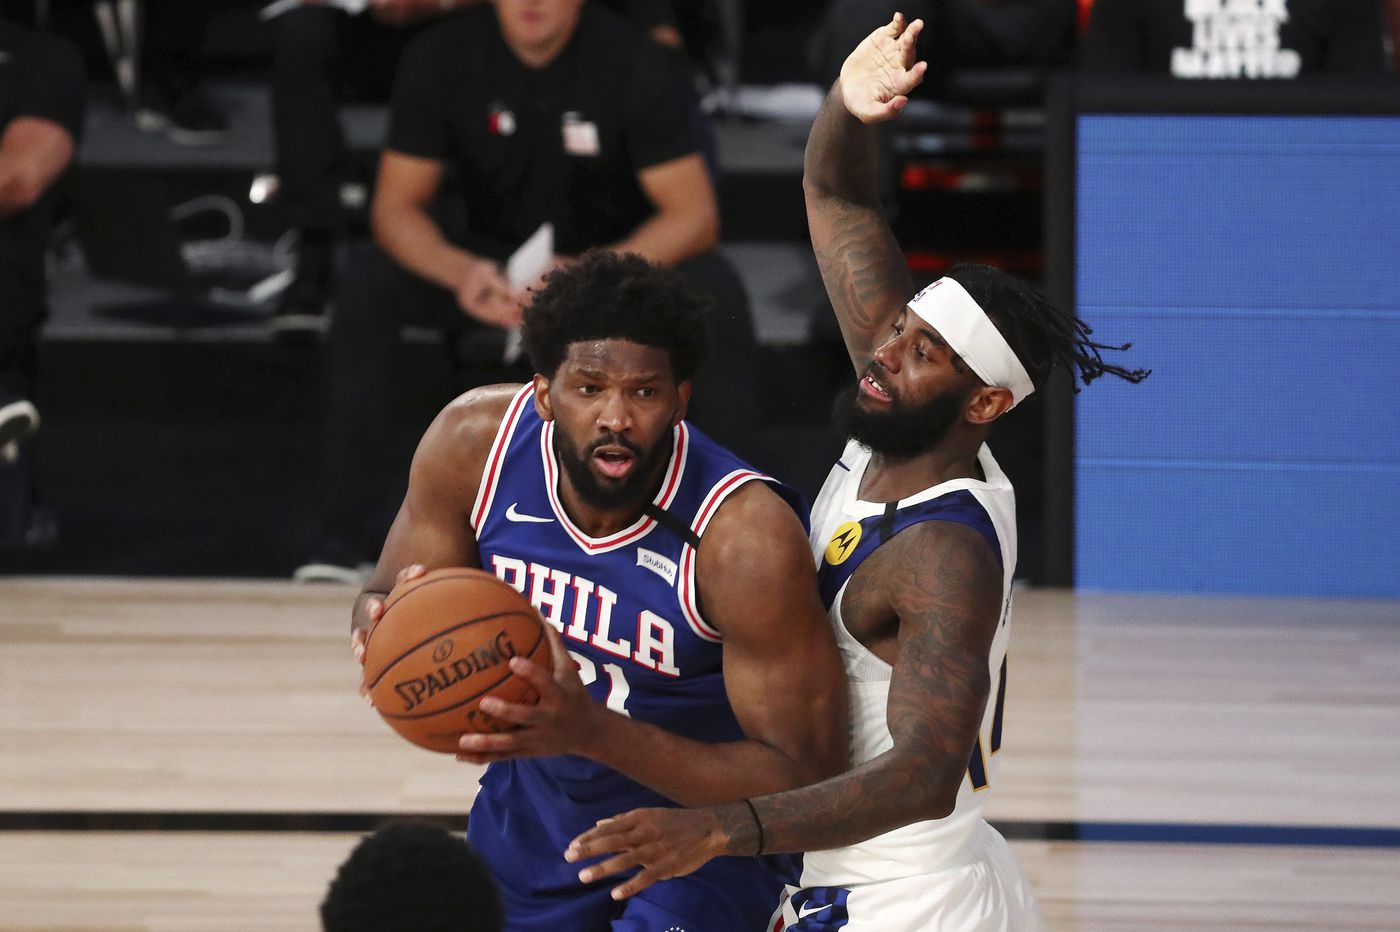 Sixers coach Brett Brown doesn't think Joel Embiid's right hand will restrict him from playing against Celtics